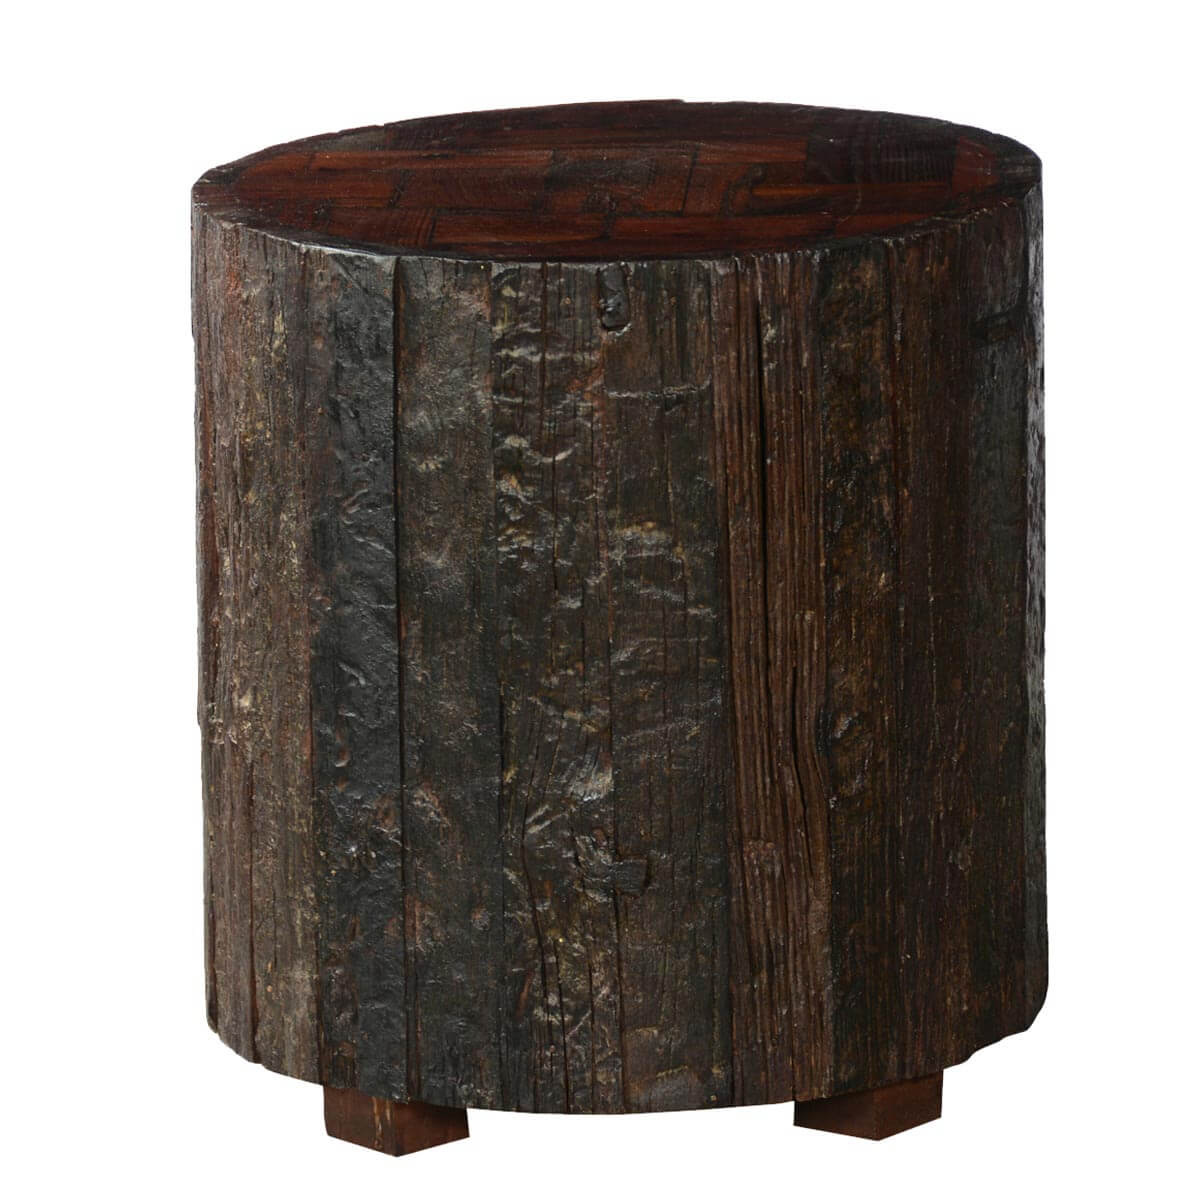 Log Cabin Rustic Reclaimed Wood Stump Standing End Table